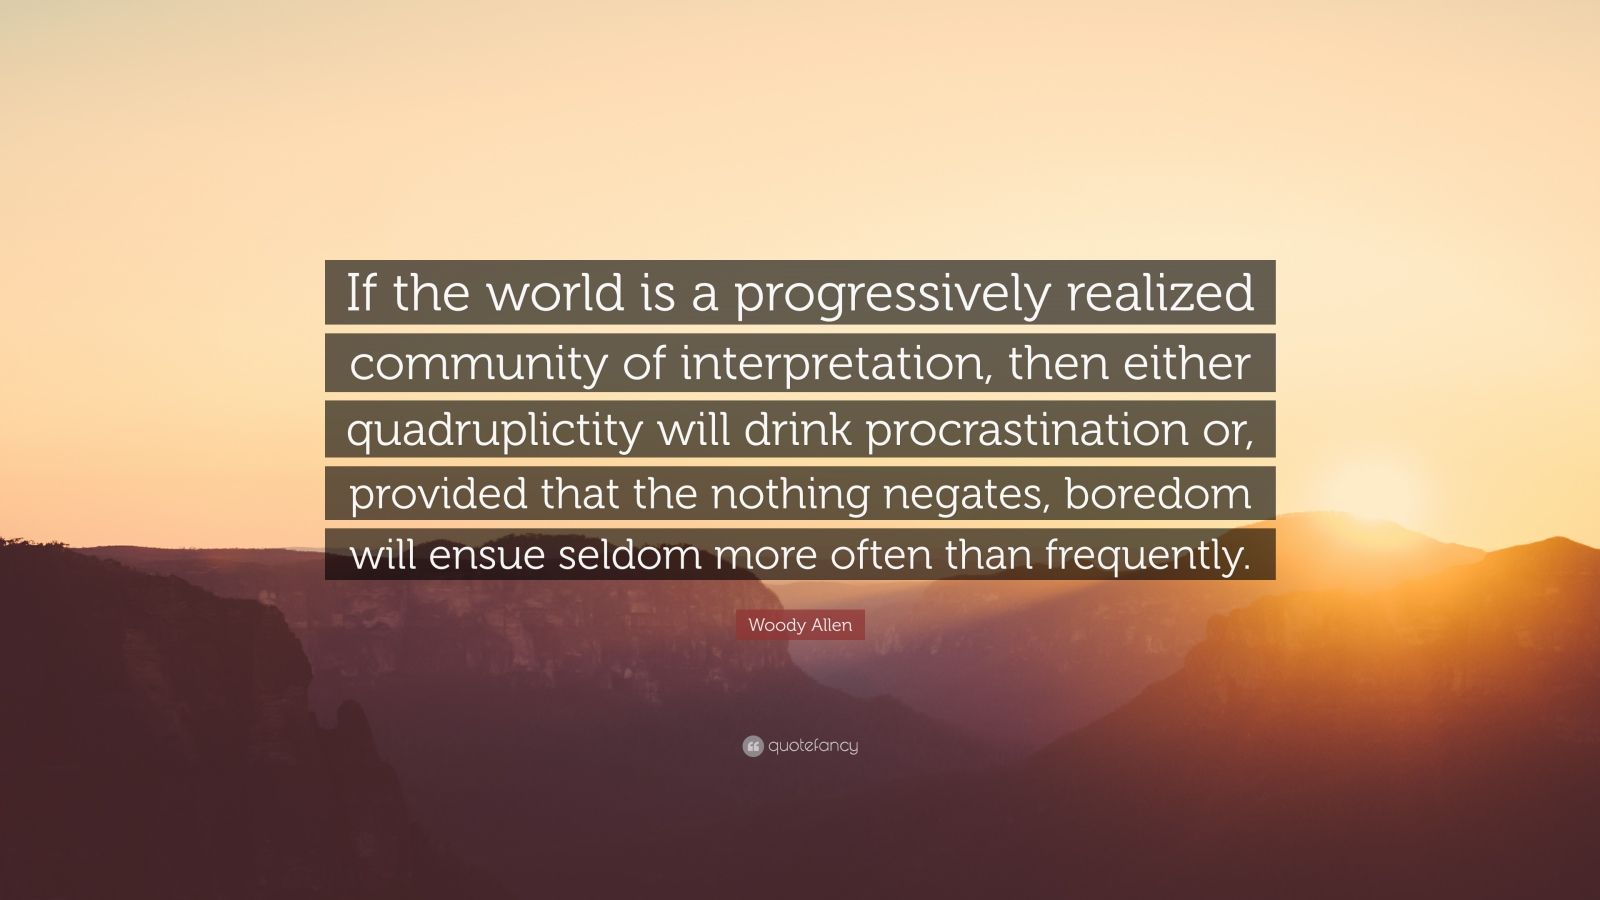 """Woody Allen Quote: """"If the world is a progressively realized community of interpretation, then either quadruplictity will drink procrastination or, provided that the nothing negates, boredom will ensue seldom more often than frequently."""""""